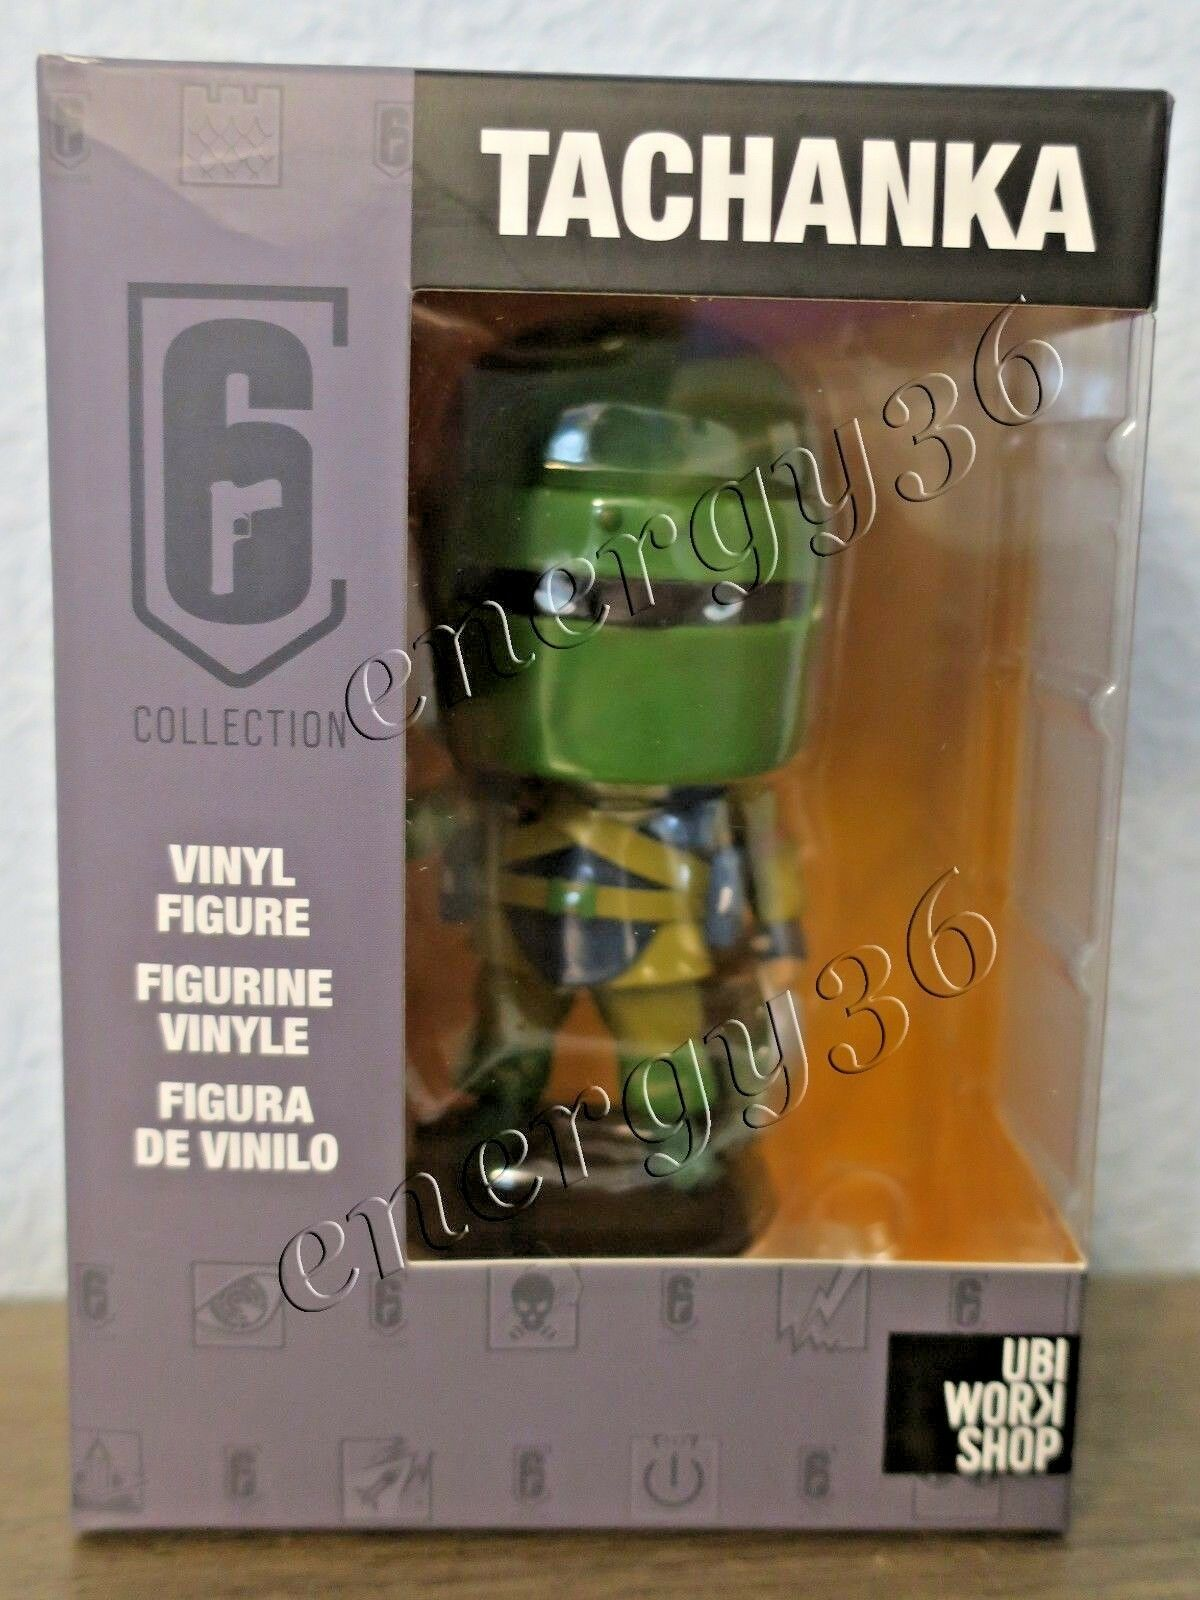 UBISOFT Six Collection vinyl figure Tachanka 10 cm from Rainbow Six Siege